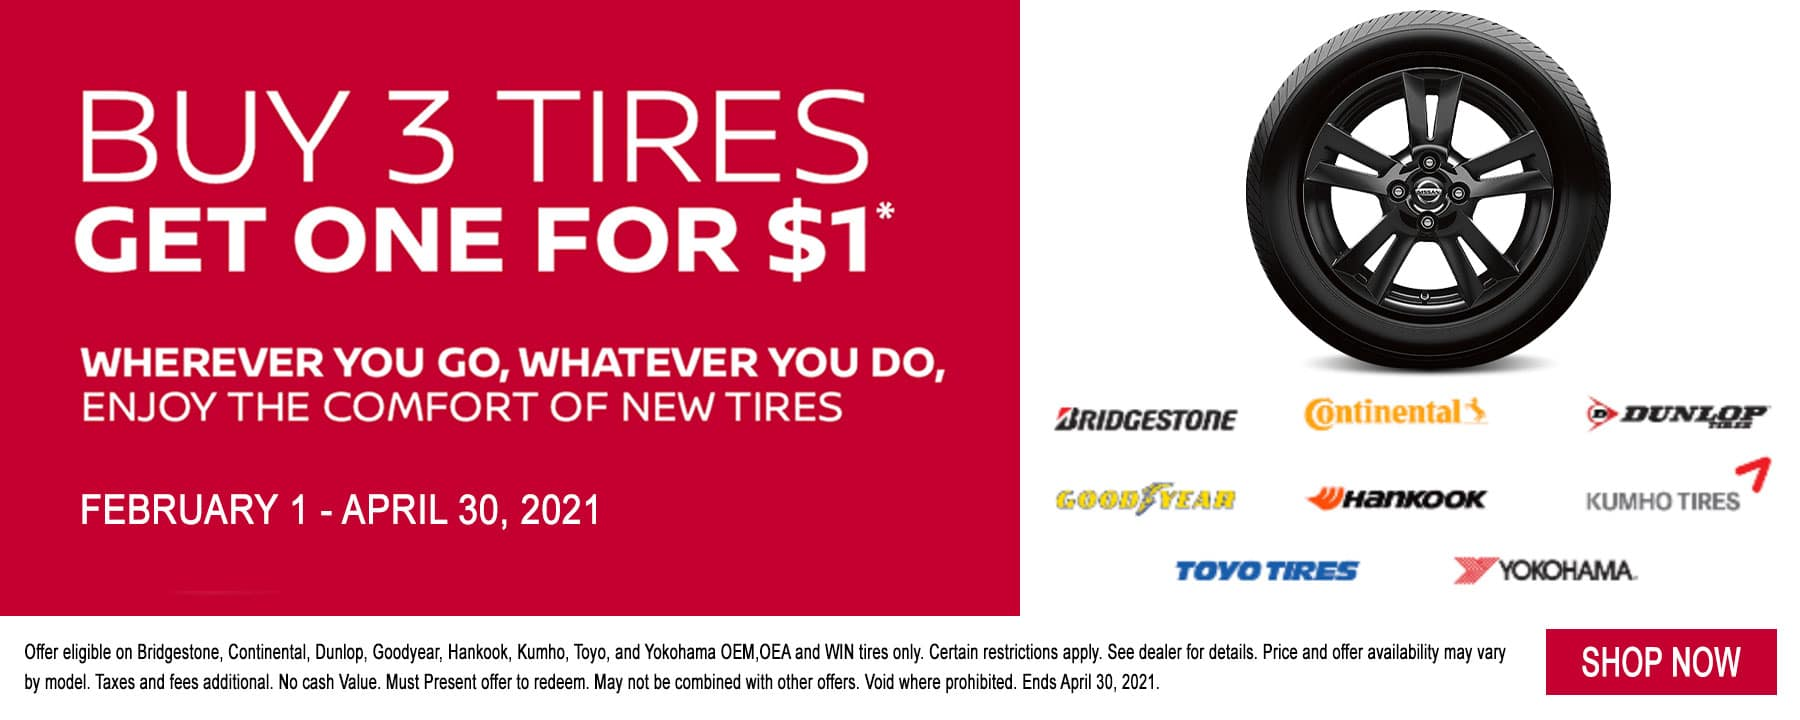 Berman Nissan of Chicago, now till April we are offering Buy 3 Tires Get One for $1